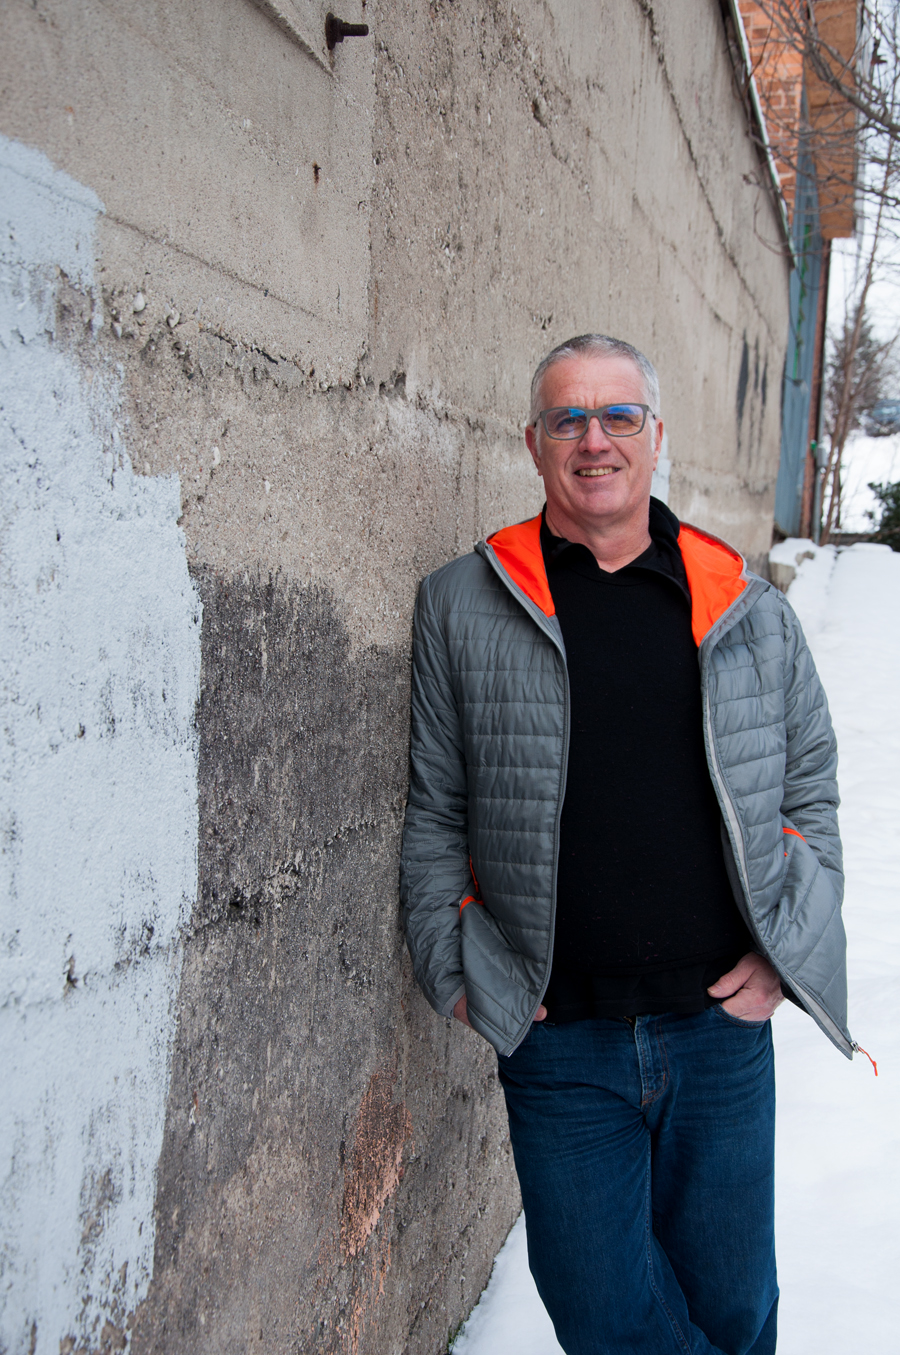 man in jeans, black sweater and grey and orange jacket, wearing glasses, leans on wall outside, downtown alley